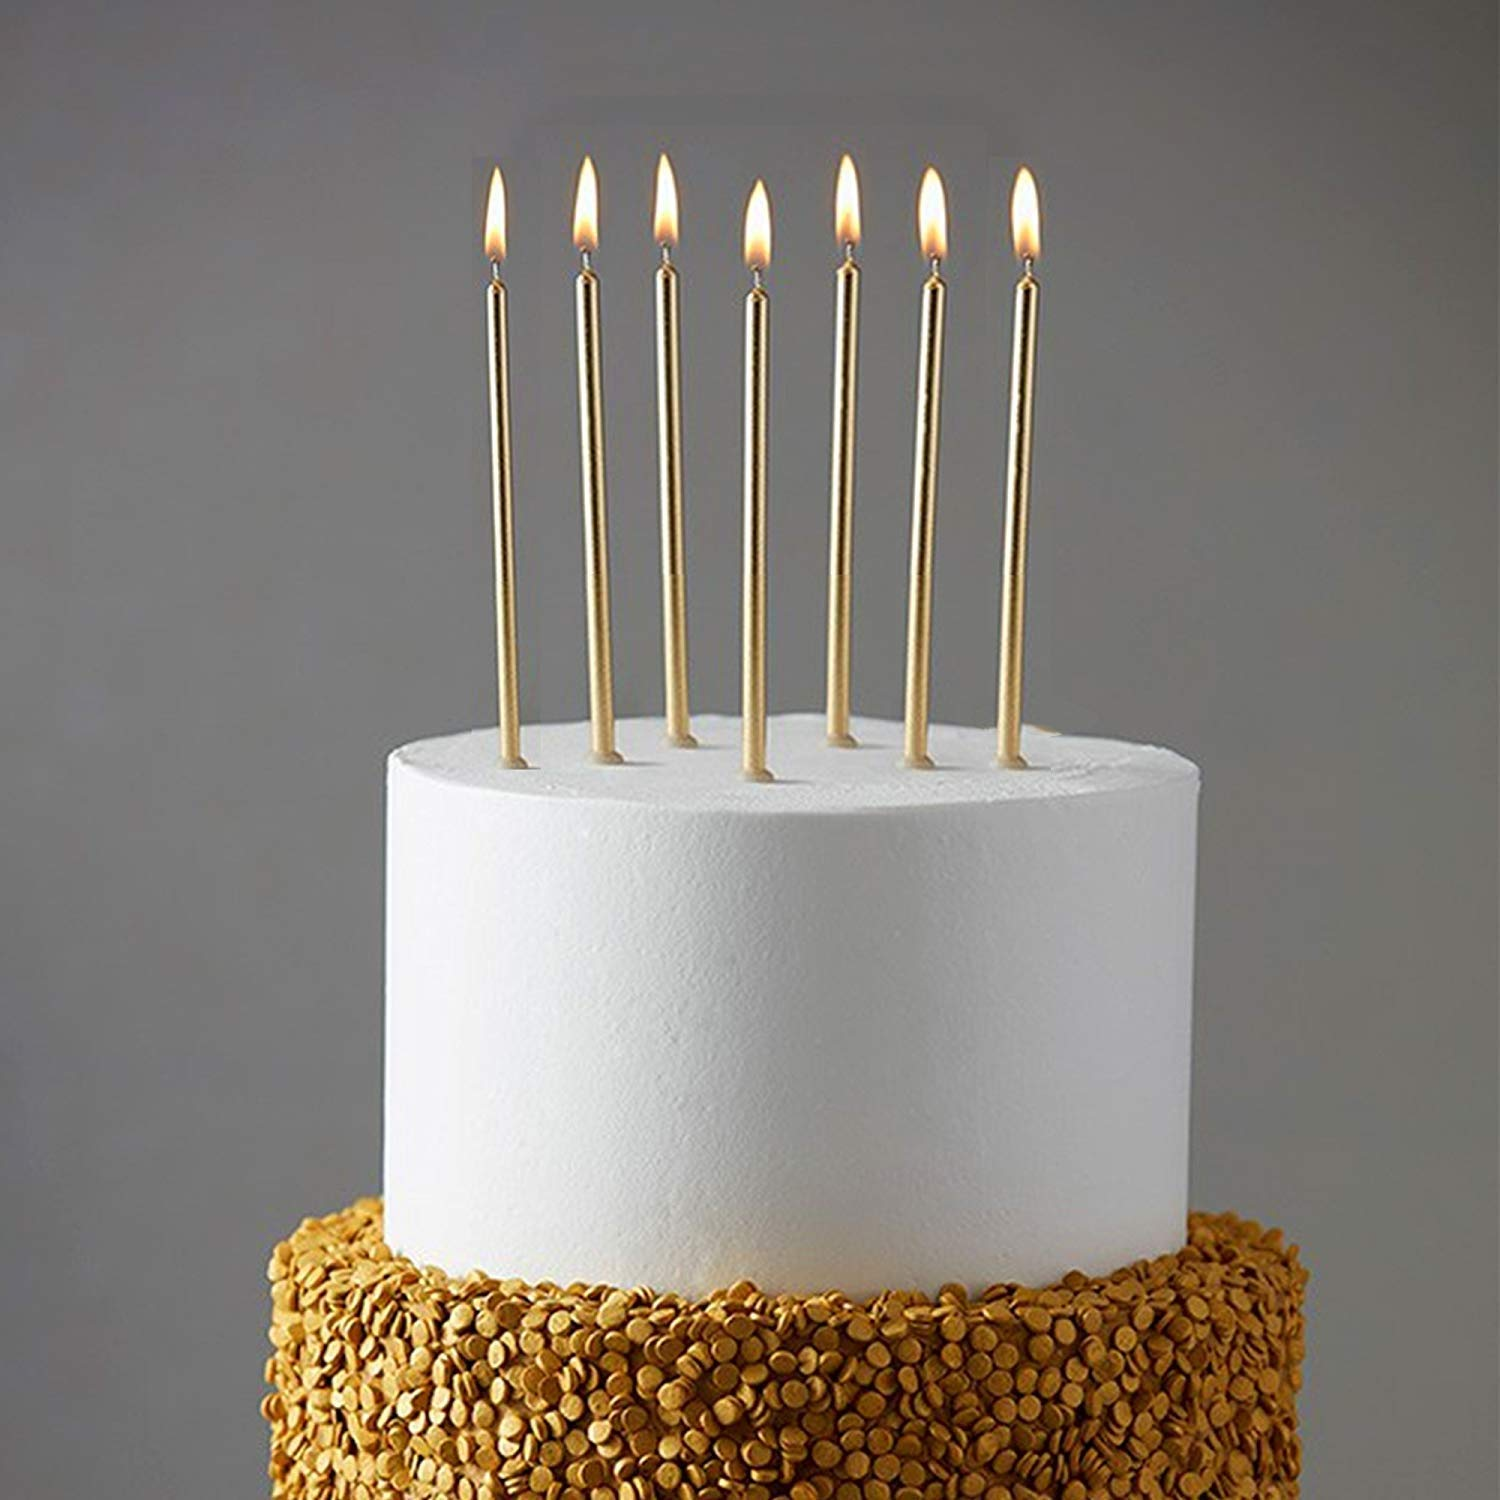 Get Quotations 24 Count Party Long Thin Cake Candles Metallic Birthday In Holders For Cakes Cupcake